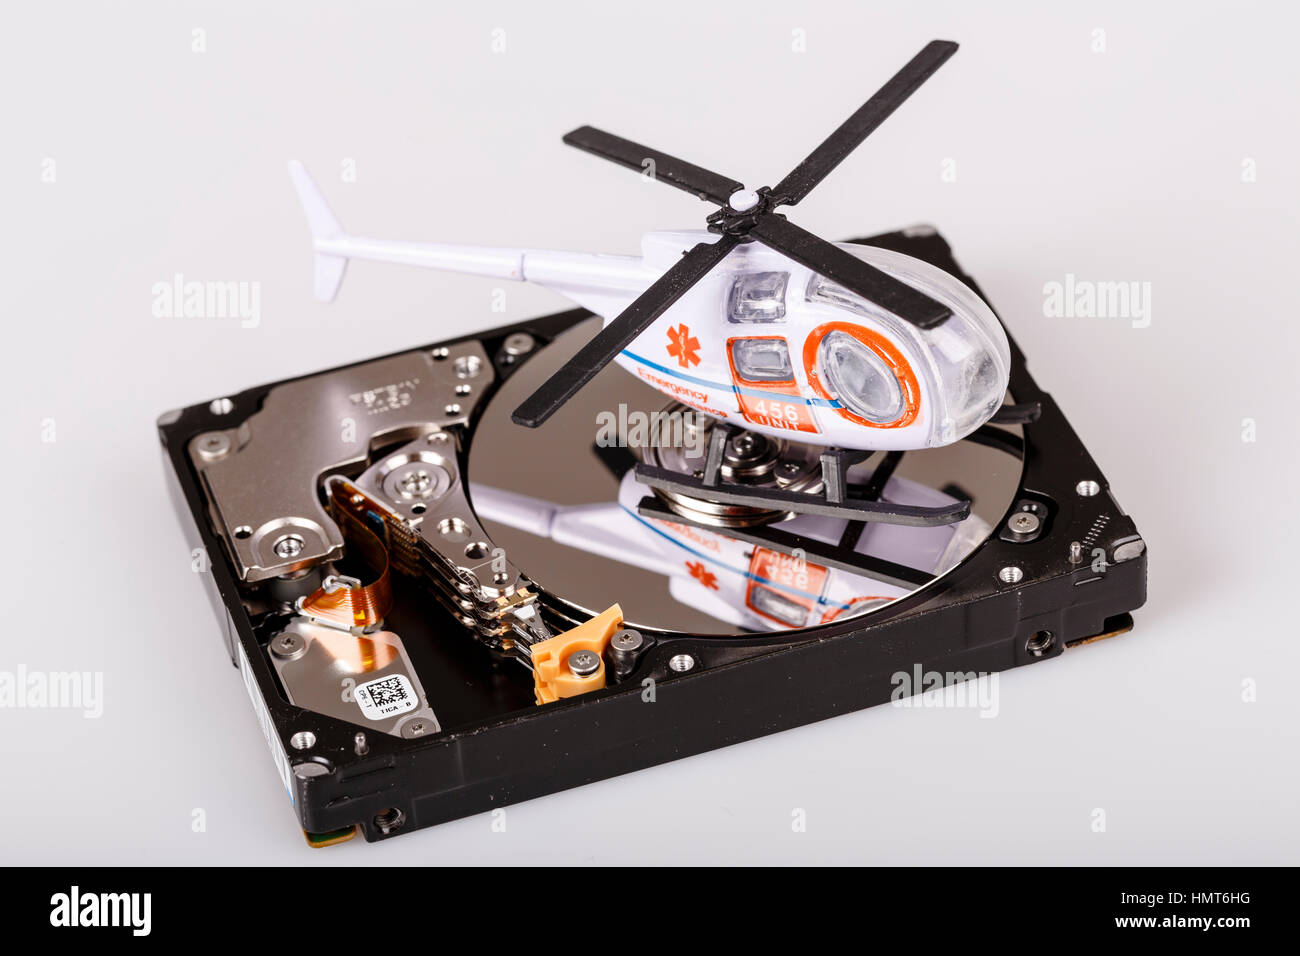 ambulance helicopter or chopper on harddrive or hdd - data backup, safe and rescue concept - Stock Image